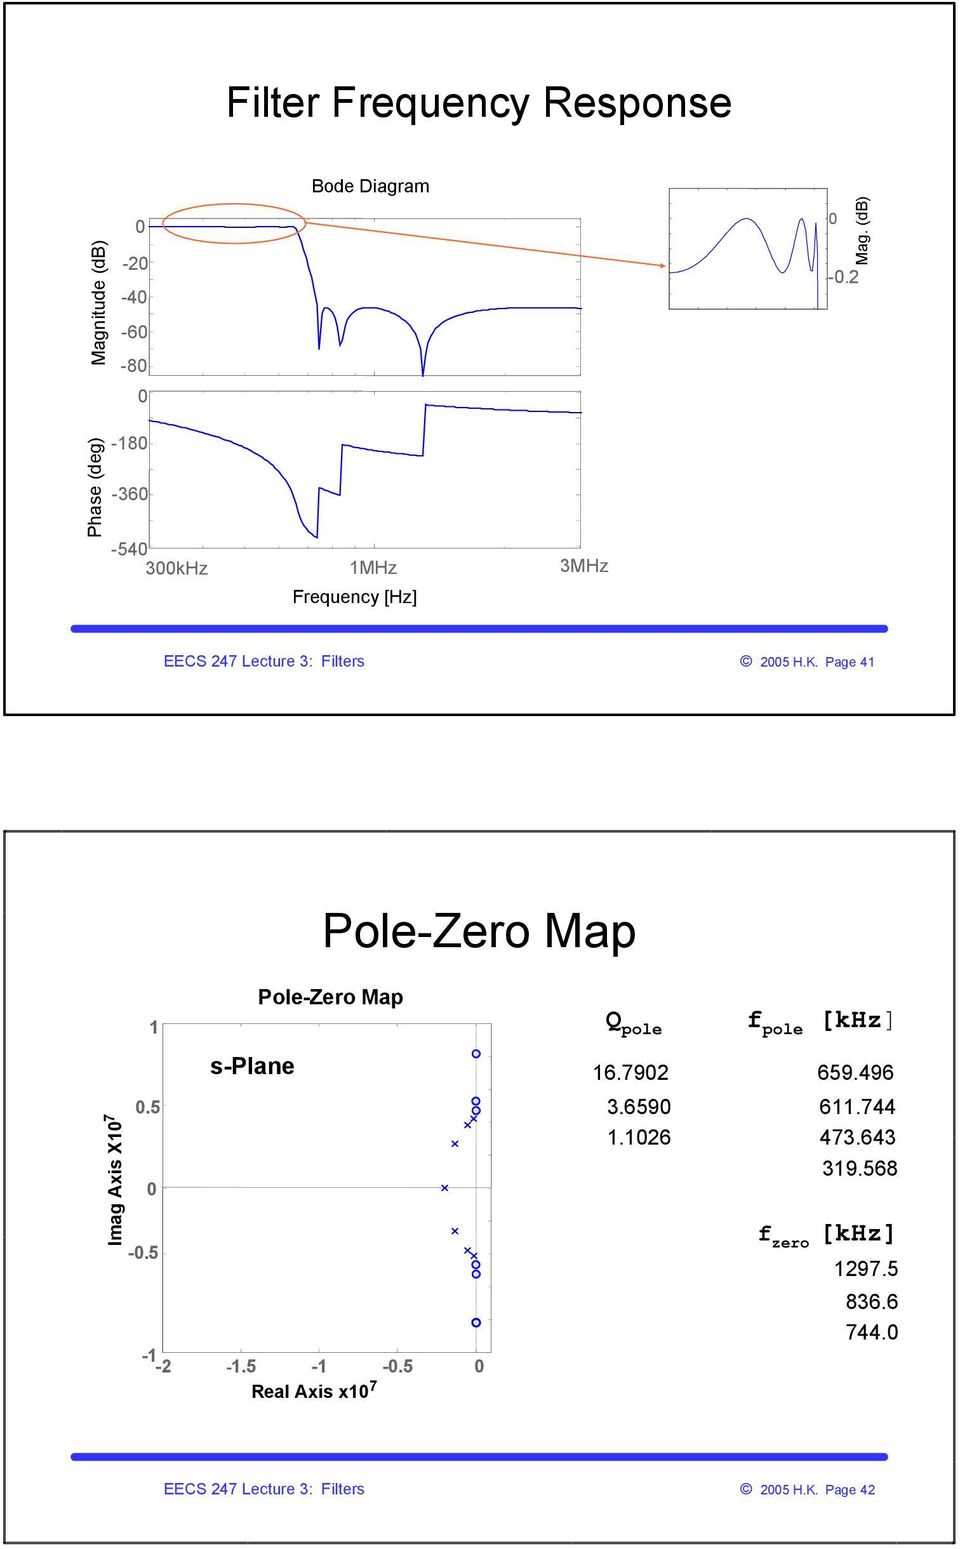 Integrator Based Filters Pdf Synthetic Inductor High Pass Audio Filter Circuit Design Page 4 Polezero Map Imag Axis X 755 Splane Map55 Eal